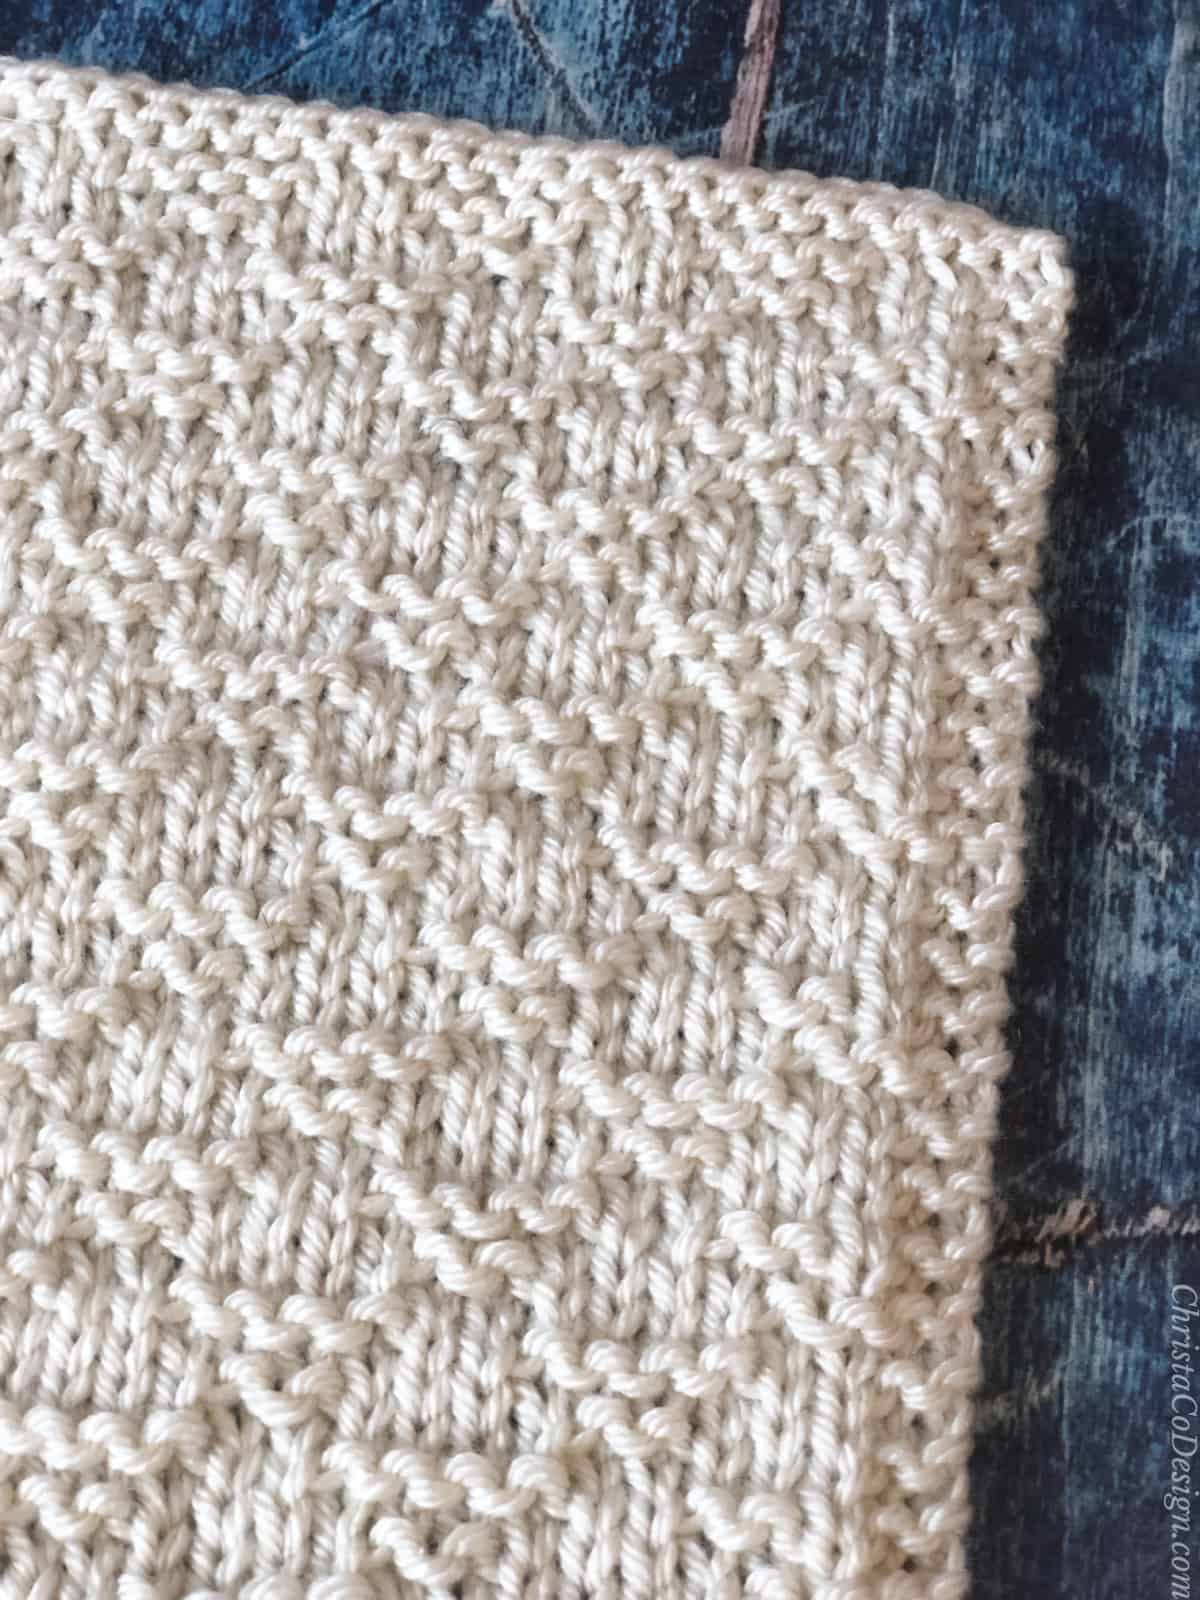 Close up of stitches creating triangle pattern in knit blanket square free pattern.